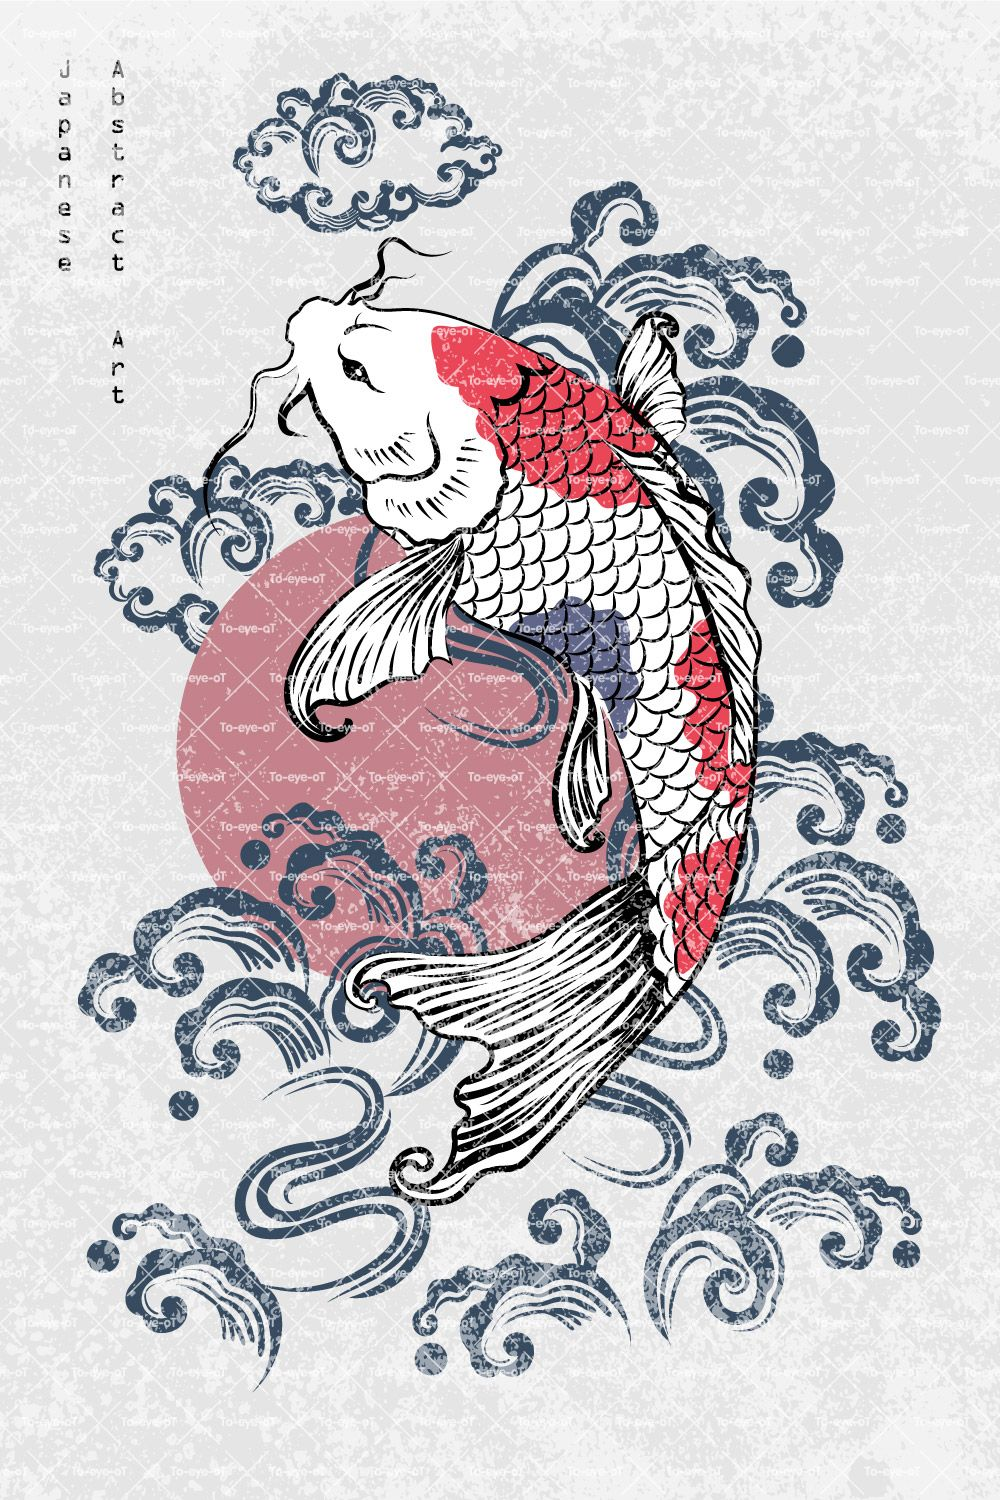 Abstract Art Single Koi Carp Fish with Blue & Red Scale Flying on Blue Brushed Water Splash and Sun